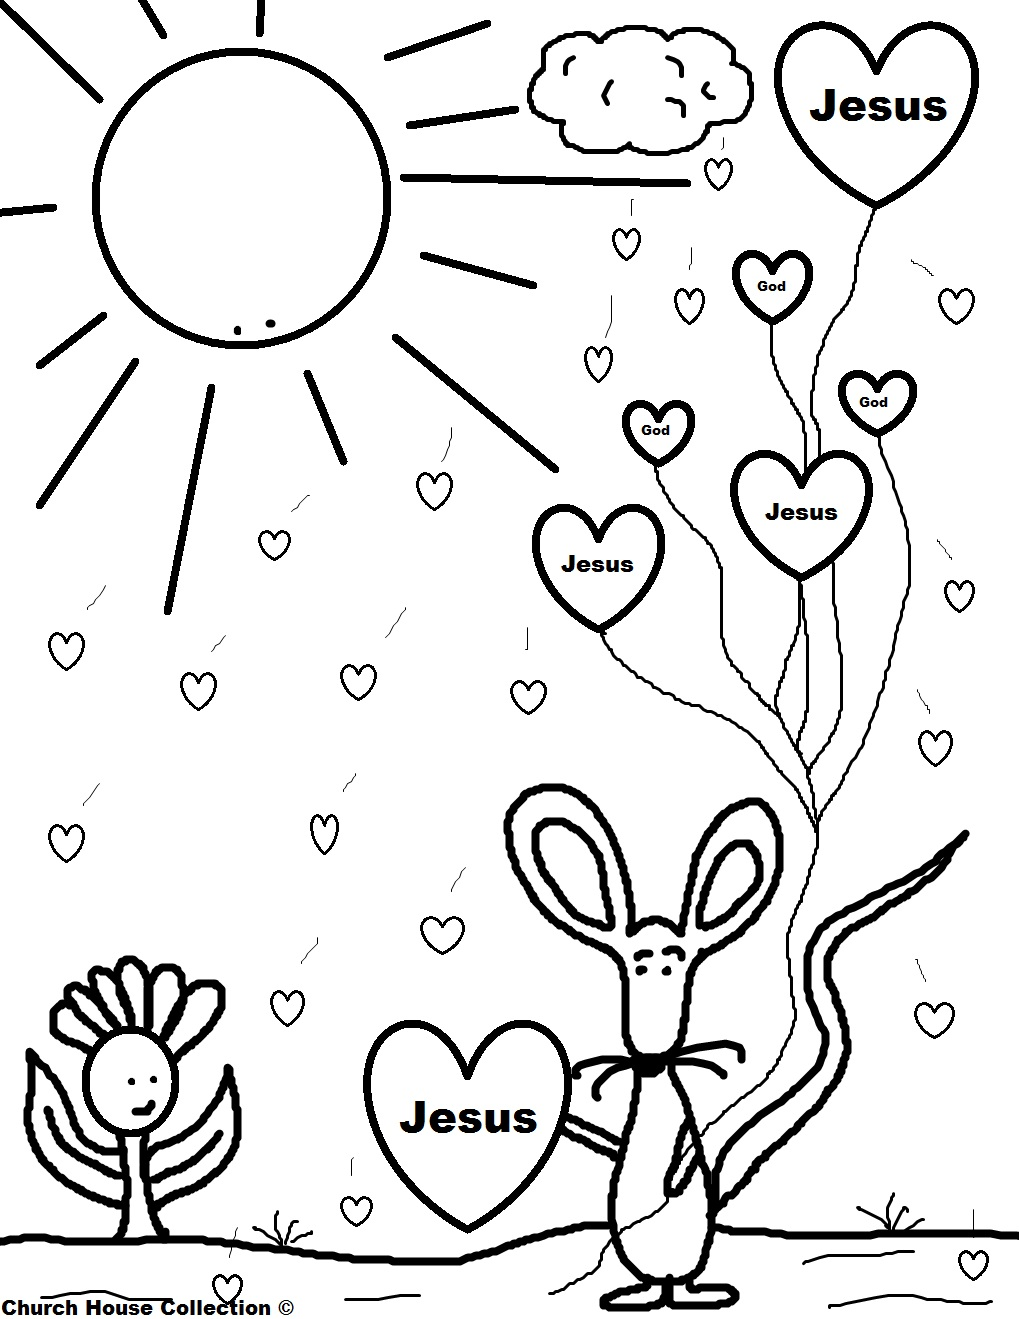 jesus valentine coloring pages - photo#6